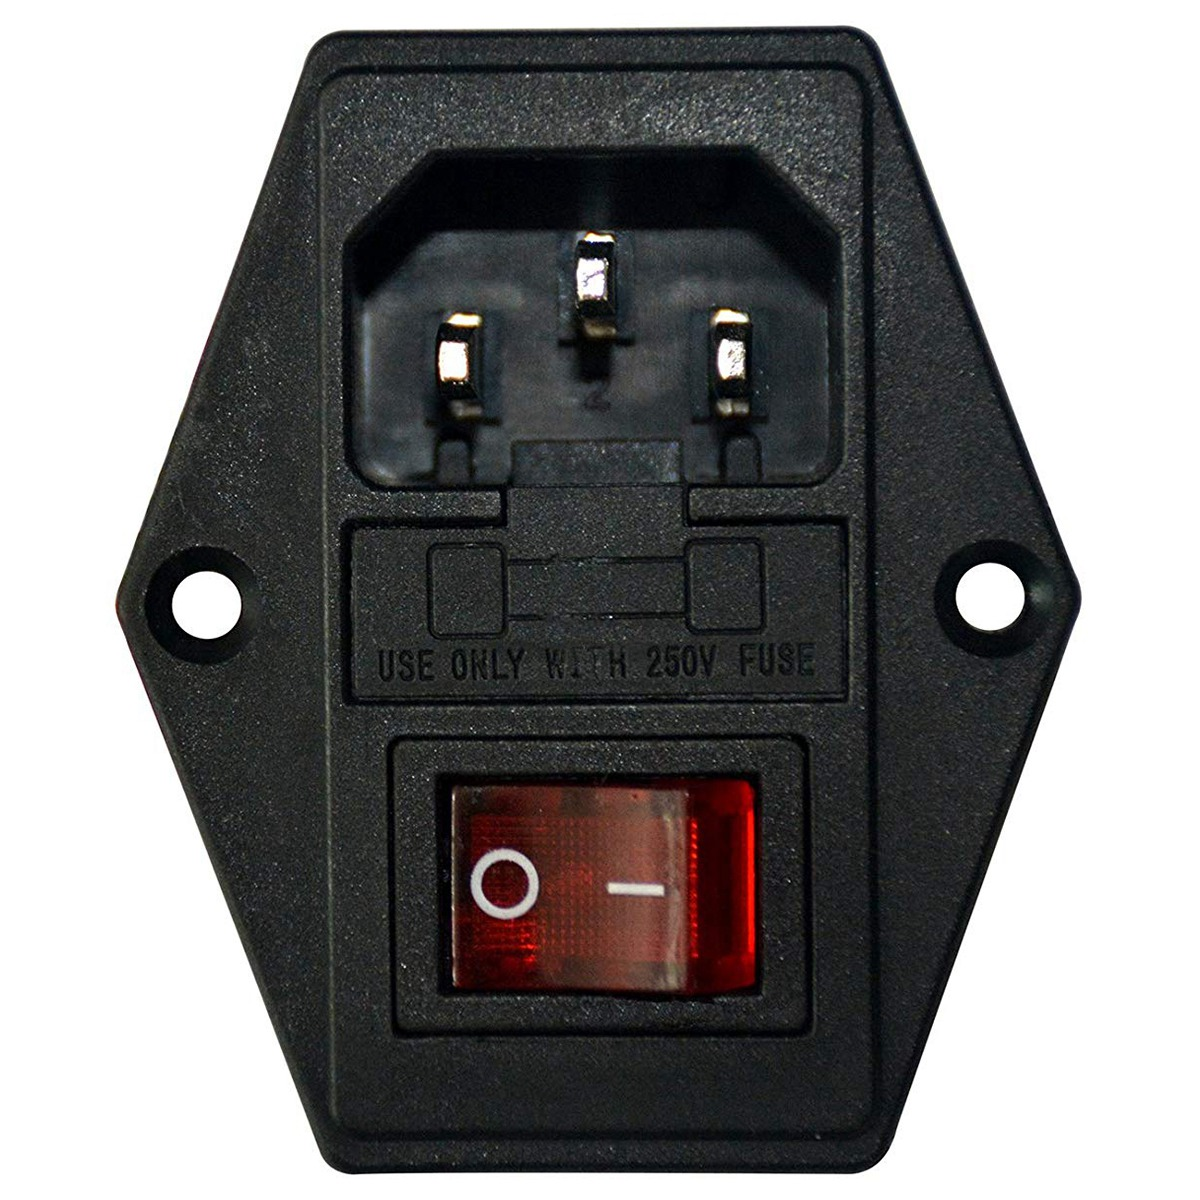 Inlet Male Power Socket With Fuse Rocker Switch, Fuse 3 Pin Iec320 250V 15A C14 Inlet Module For Computer And Home Appliance P-in Electrical Sockets from Home Improvement